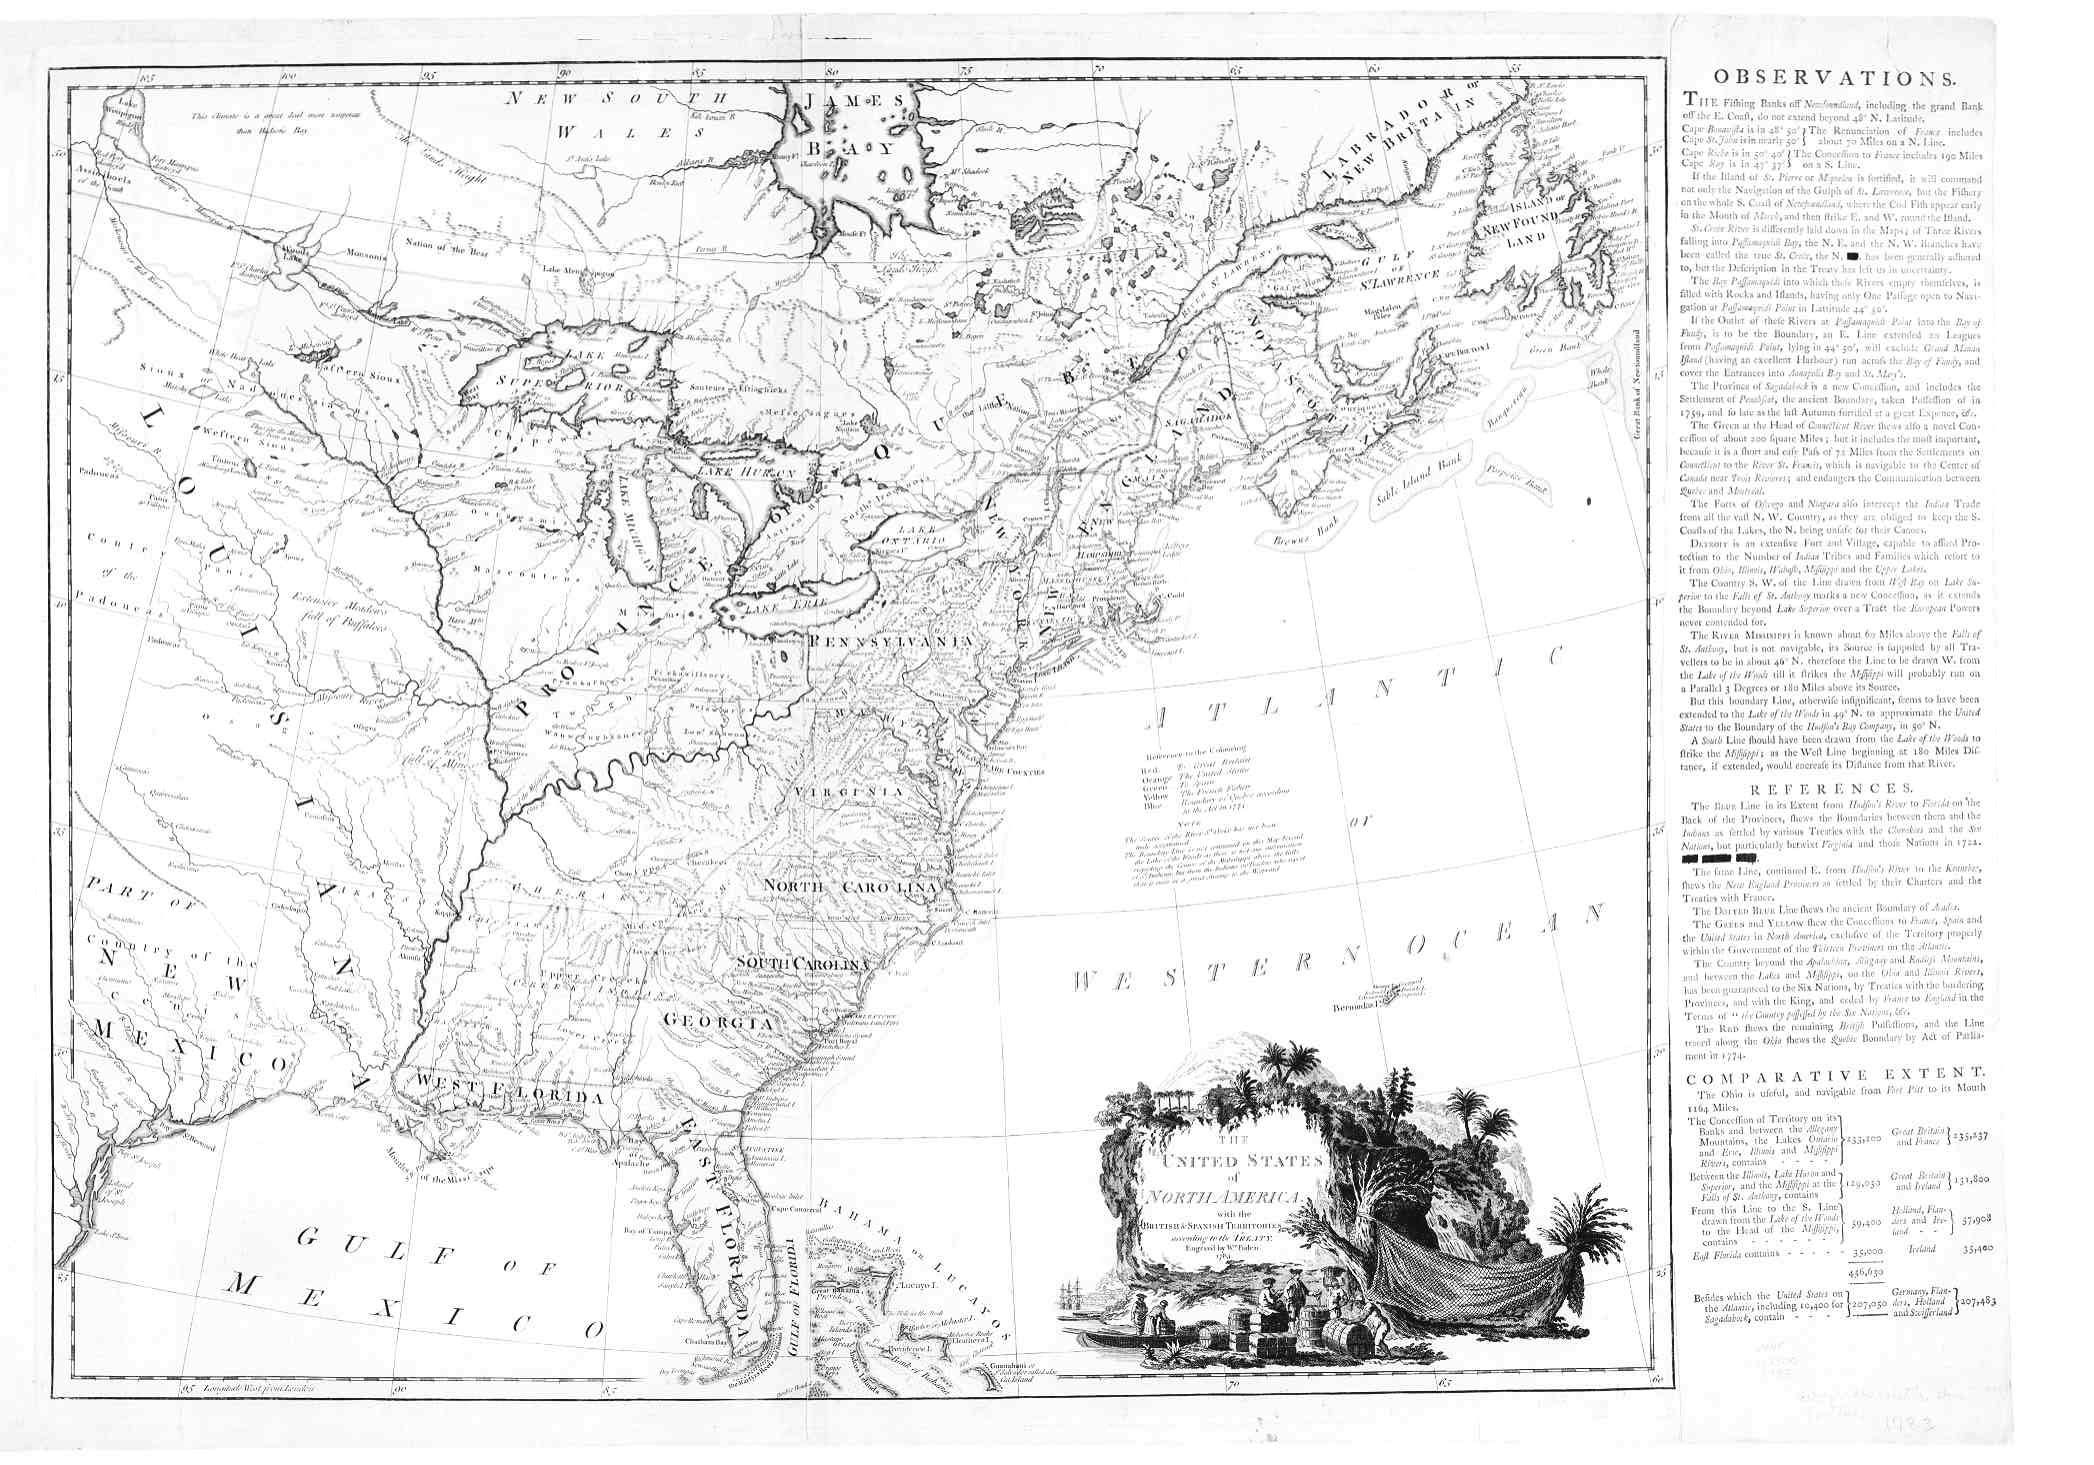 United States Map Roads also Blank Us Maps Eastern United States also Explicit Thesis moreover Printable Logic Puzzles in addition Royalty Free Stock Photography Us Army M4a1 Rifle Image5522497. on us map at time of civil war